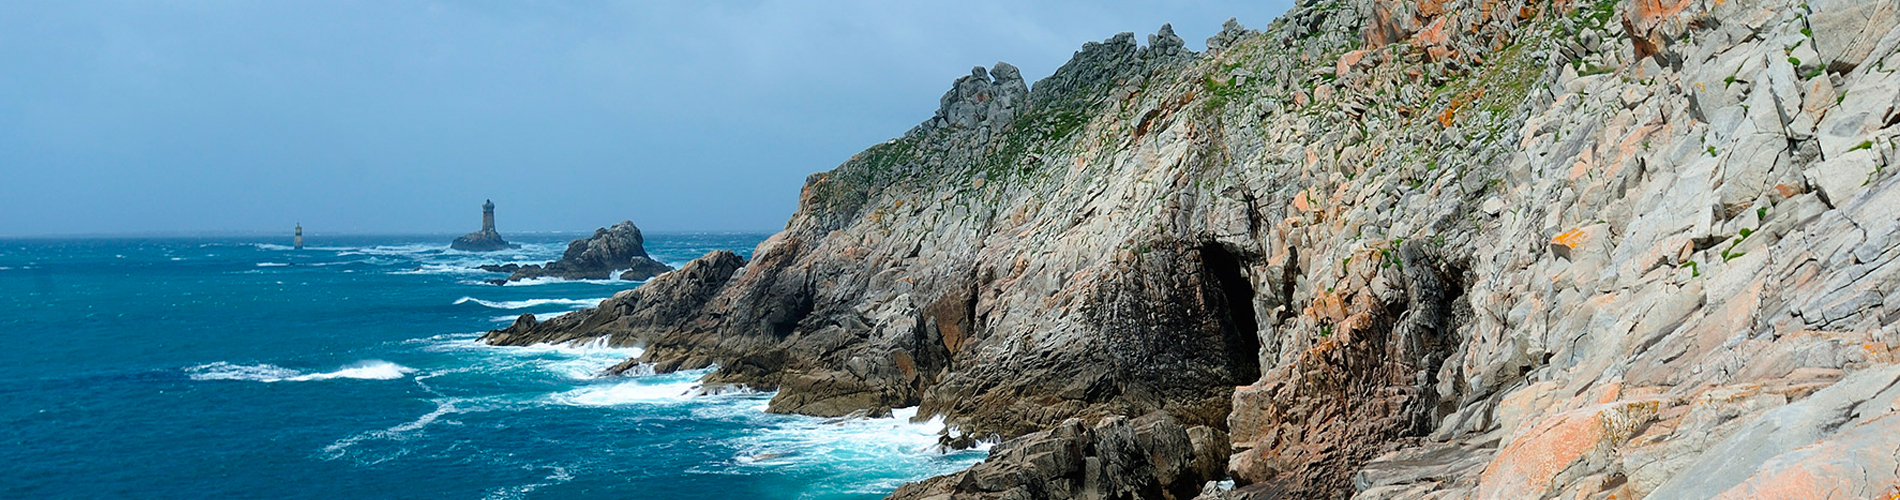 1900x500_top21finistere_